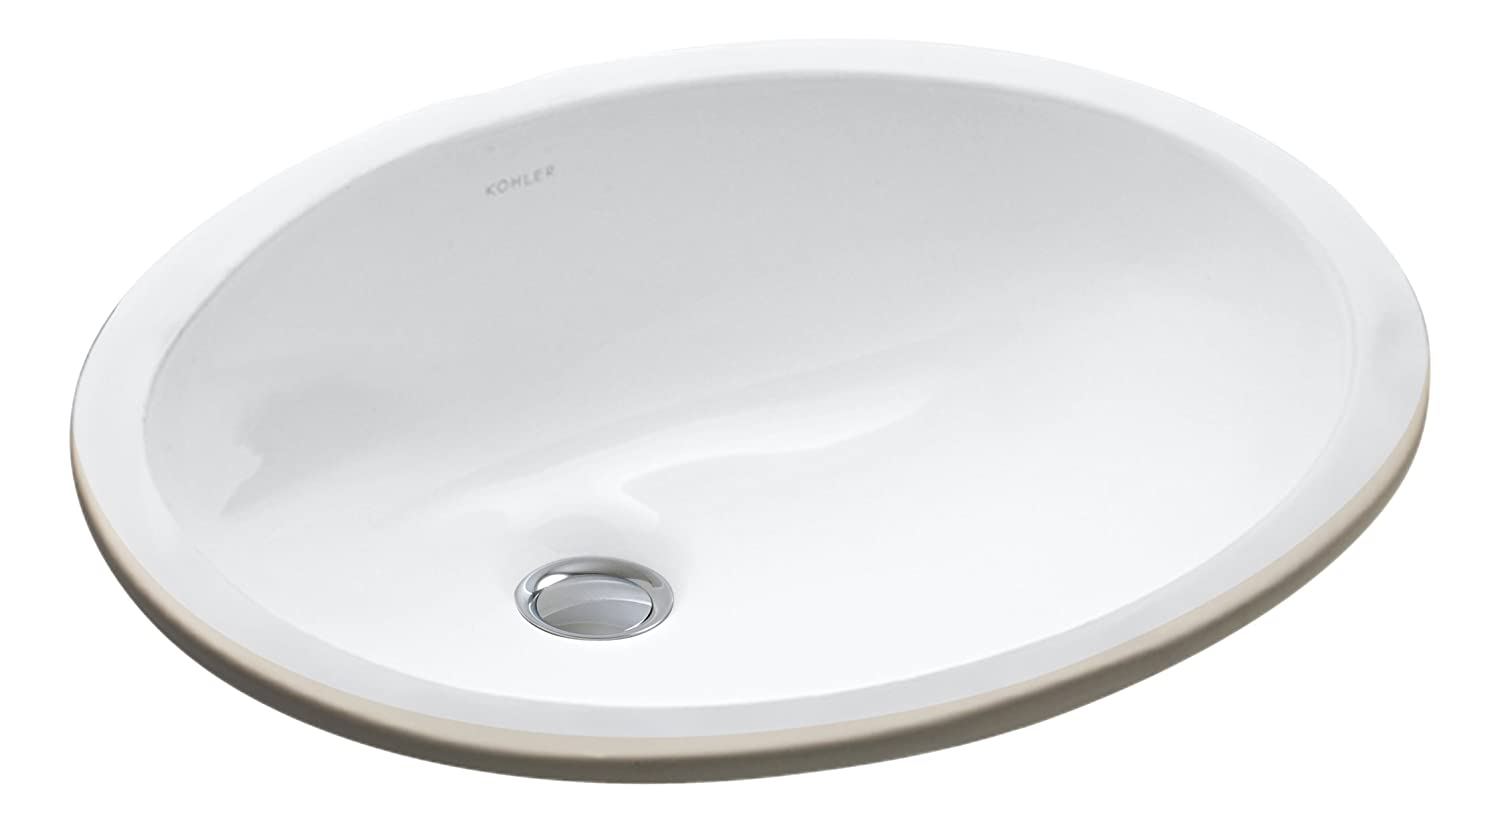 KOHLER K-2209-0 Caxton Undercounter Bathroom Sink, White - Bathroom ...